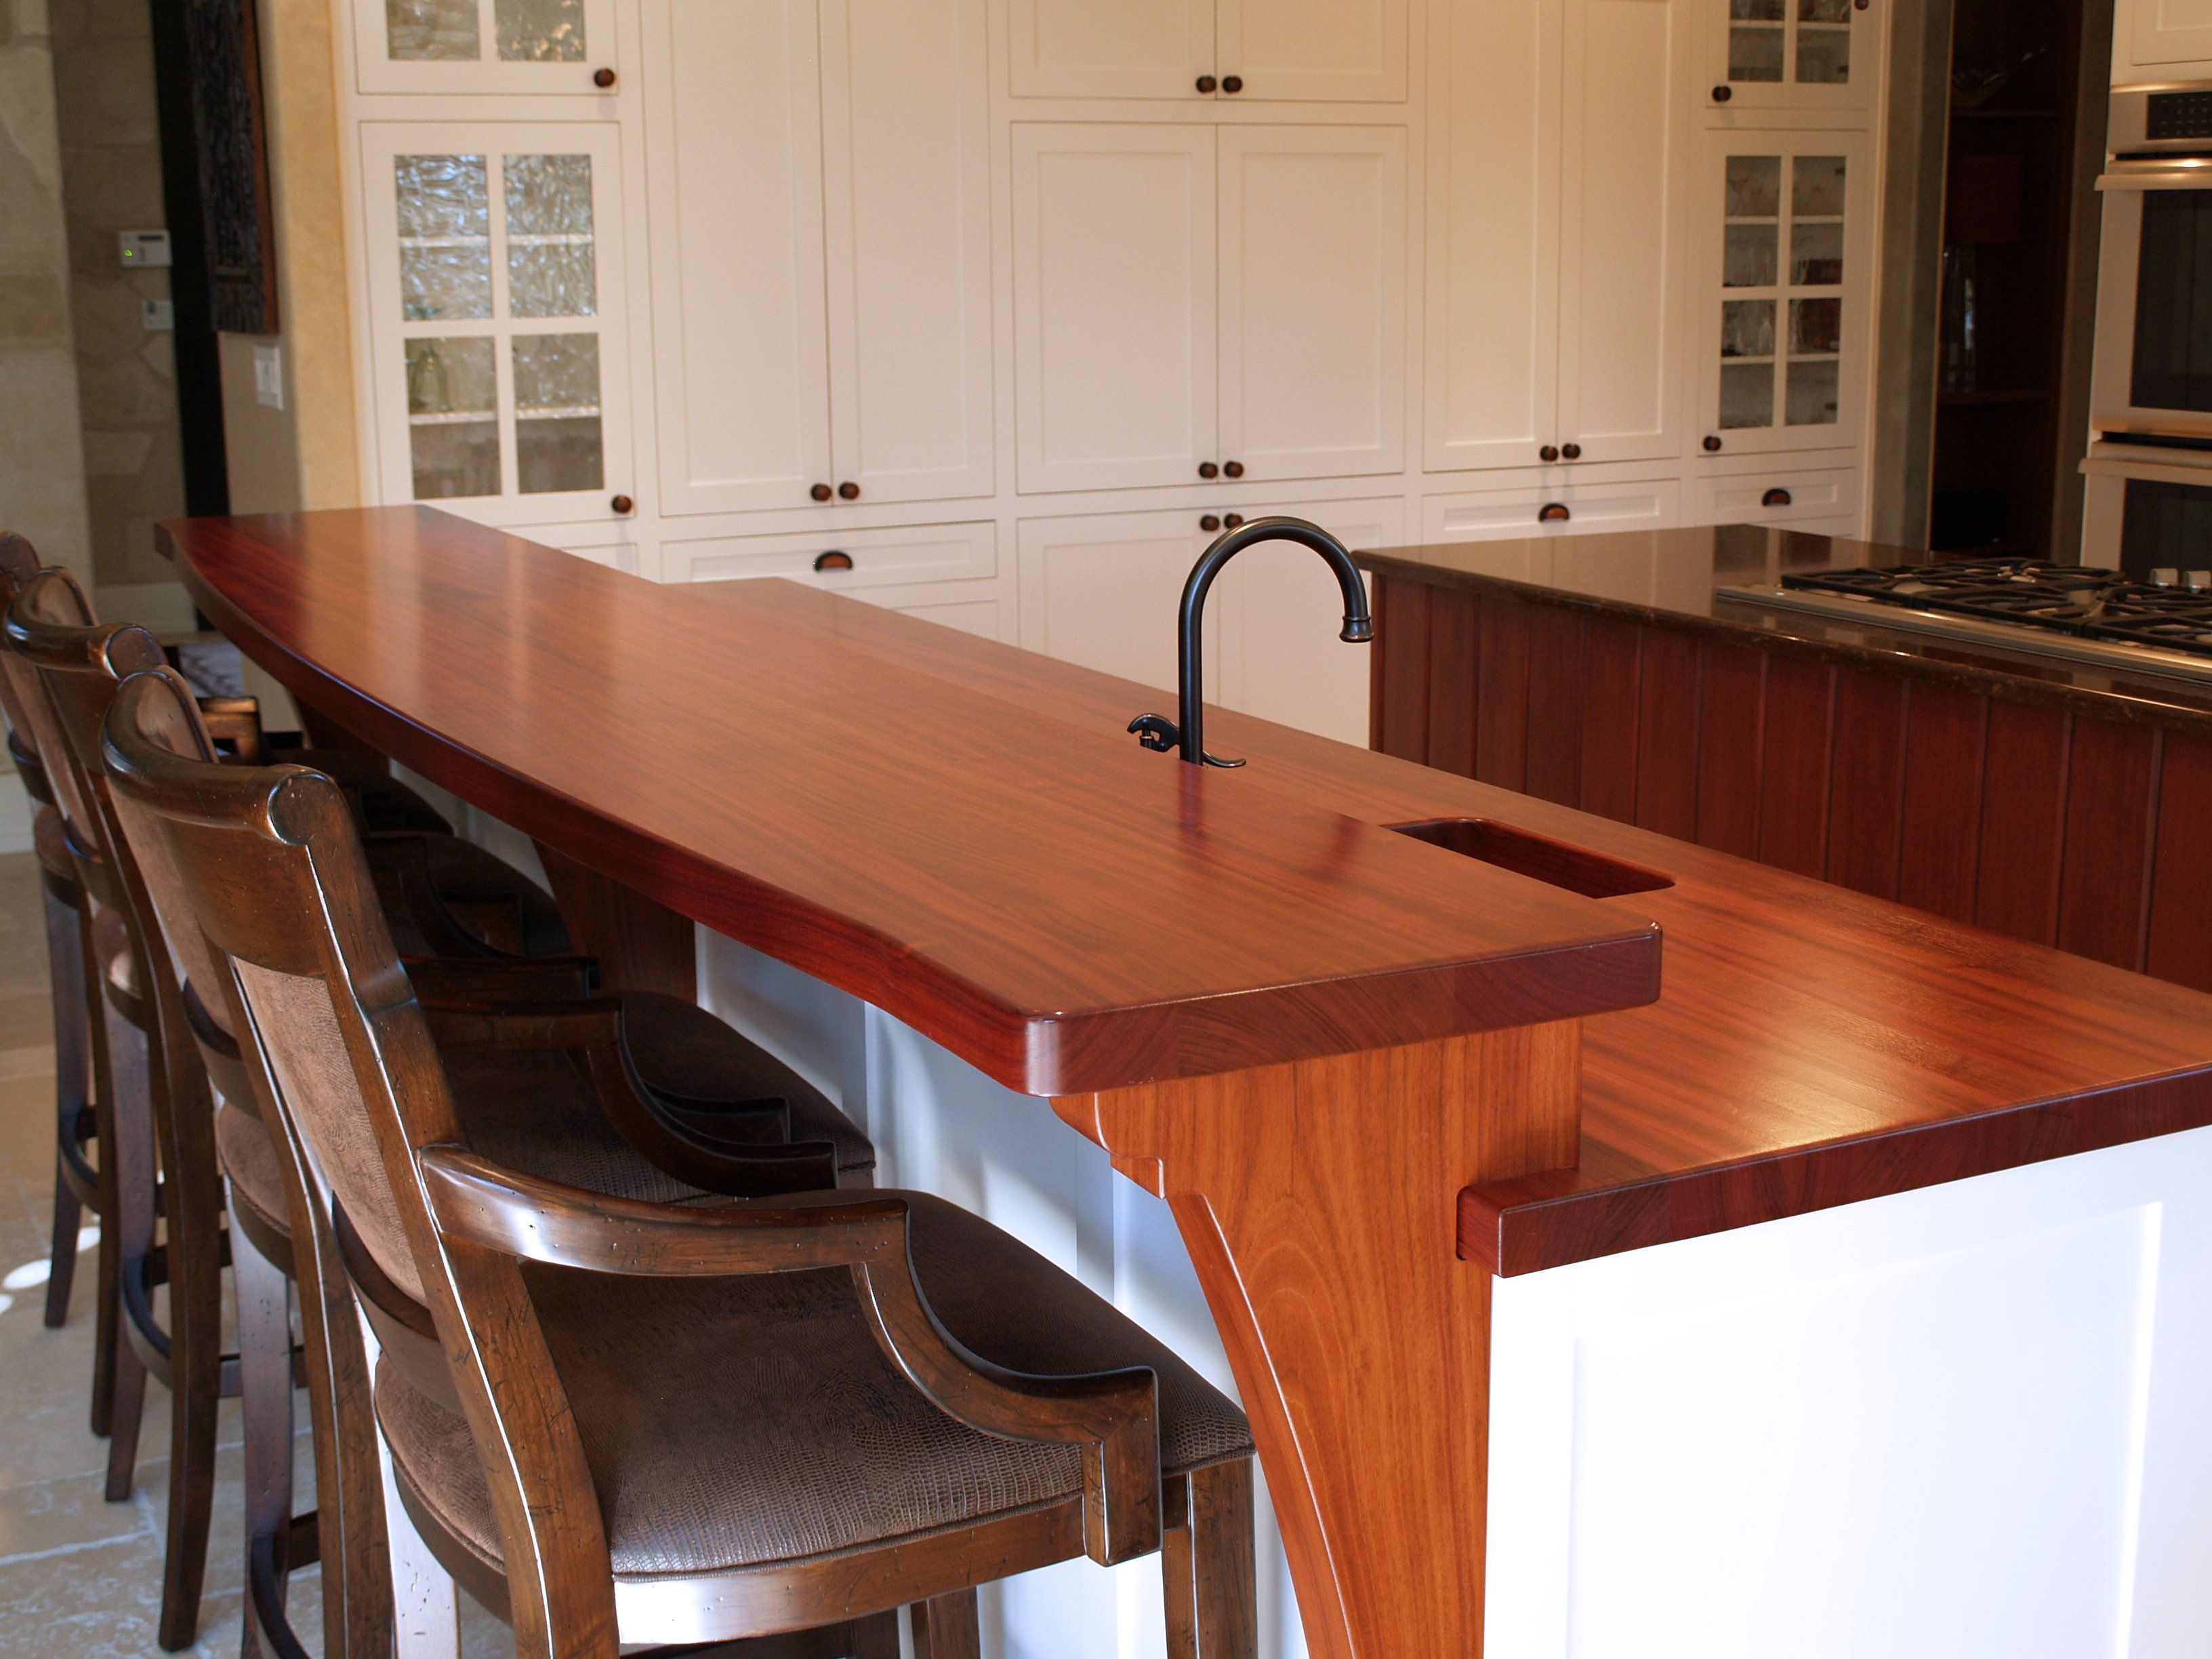 Jatoba Edge Grain Countertop And Bar Top With Custom Corbels.